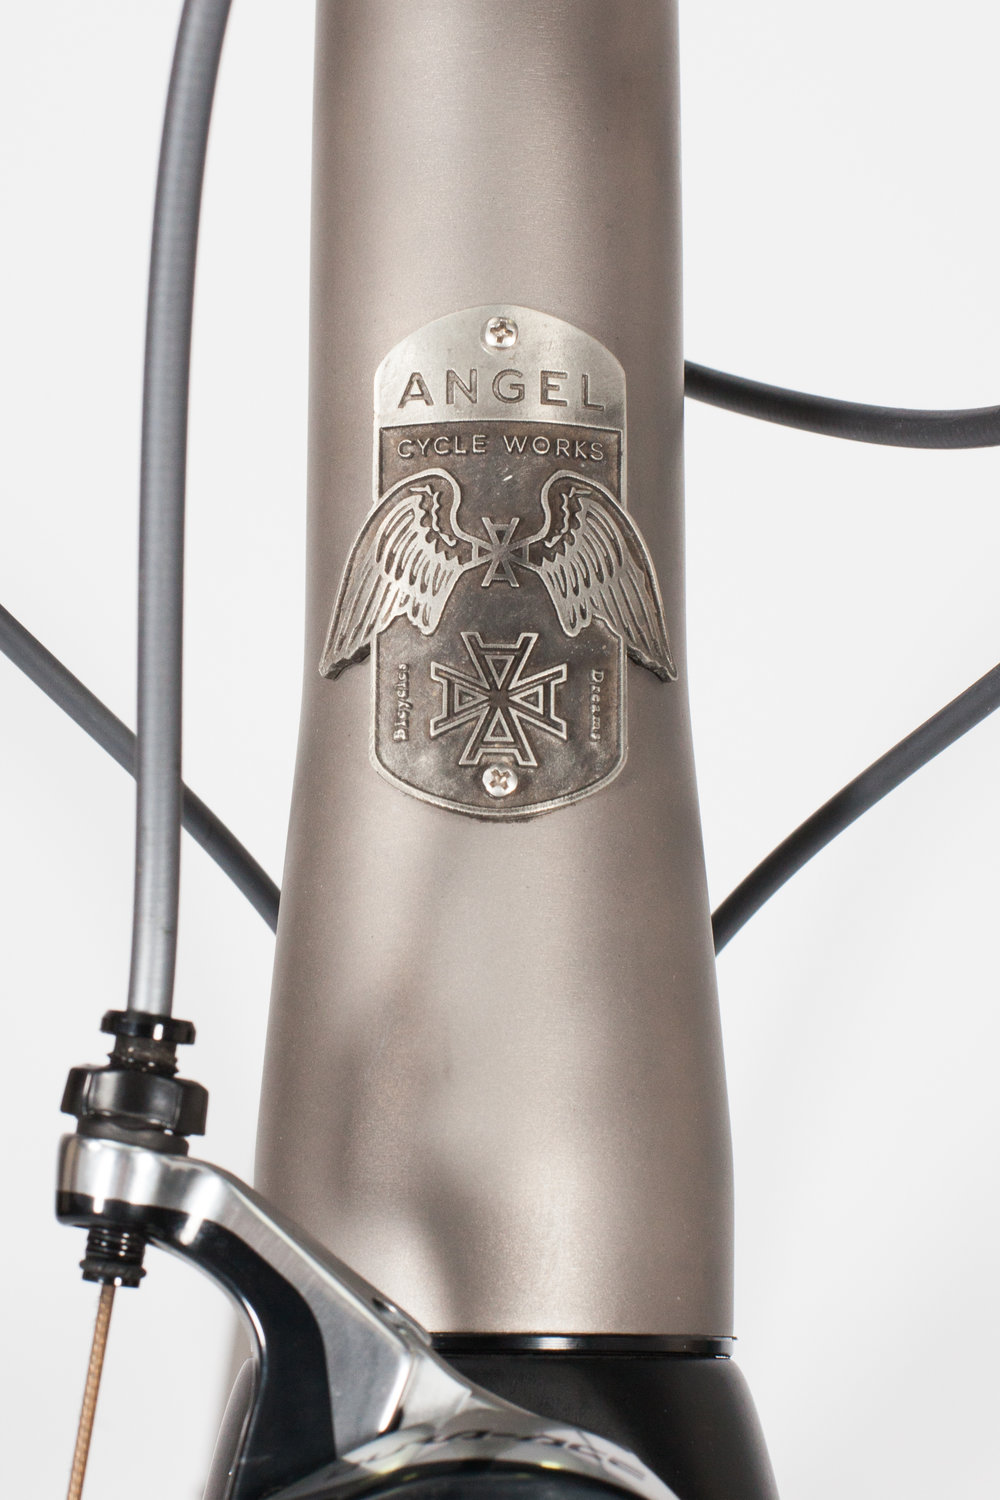 Angel Cycle Works Allegro (Road Racing) / Custom Titanium.